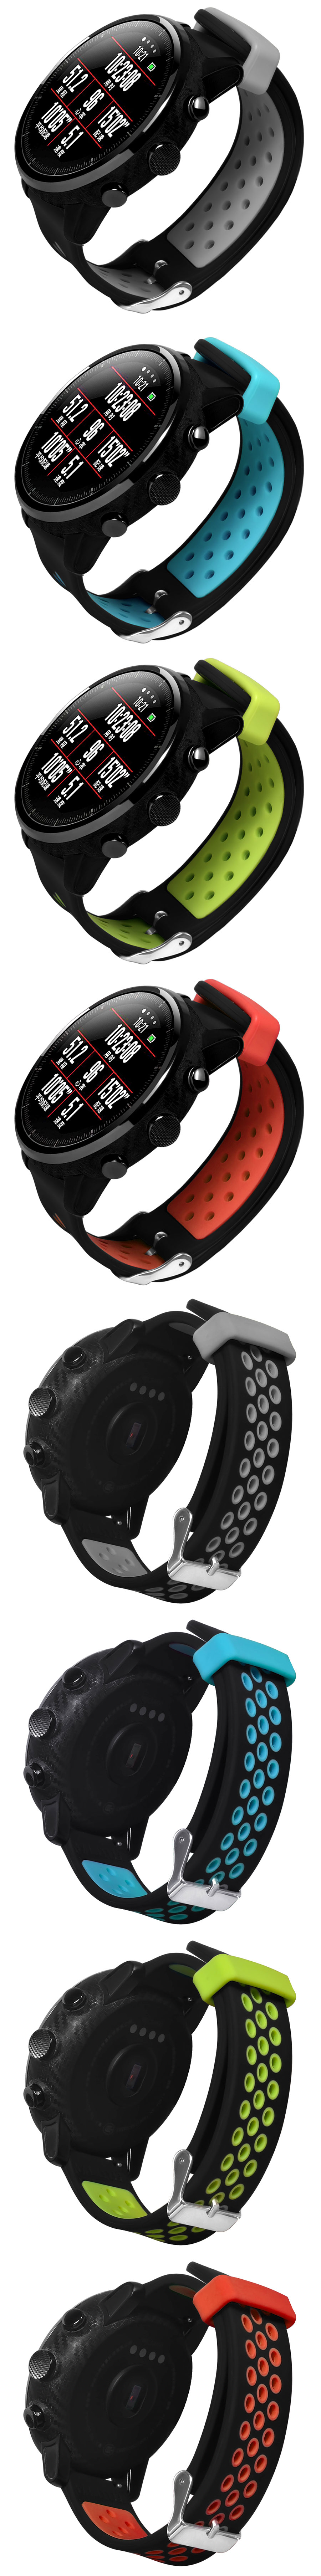 22mm Silicone Watch Band for Amazfit 2S 22mm Smart Watch